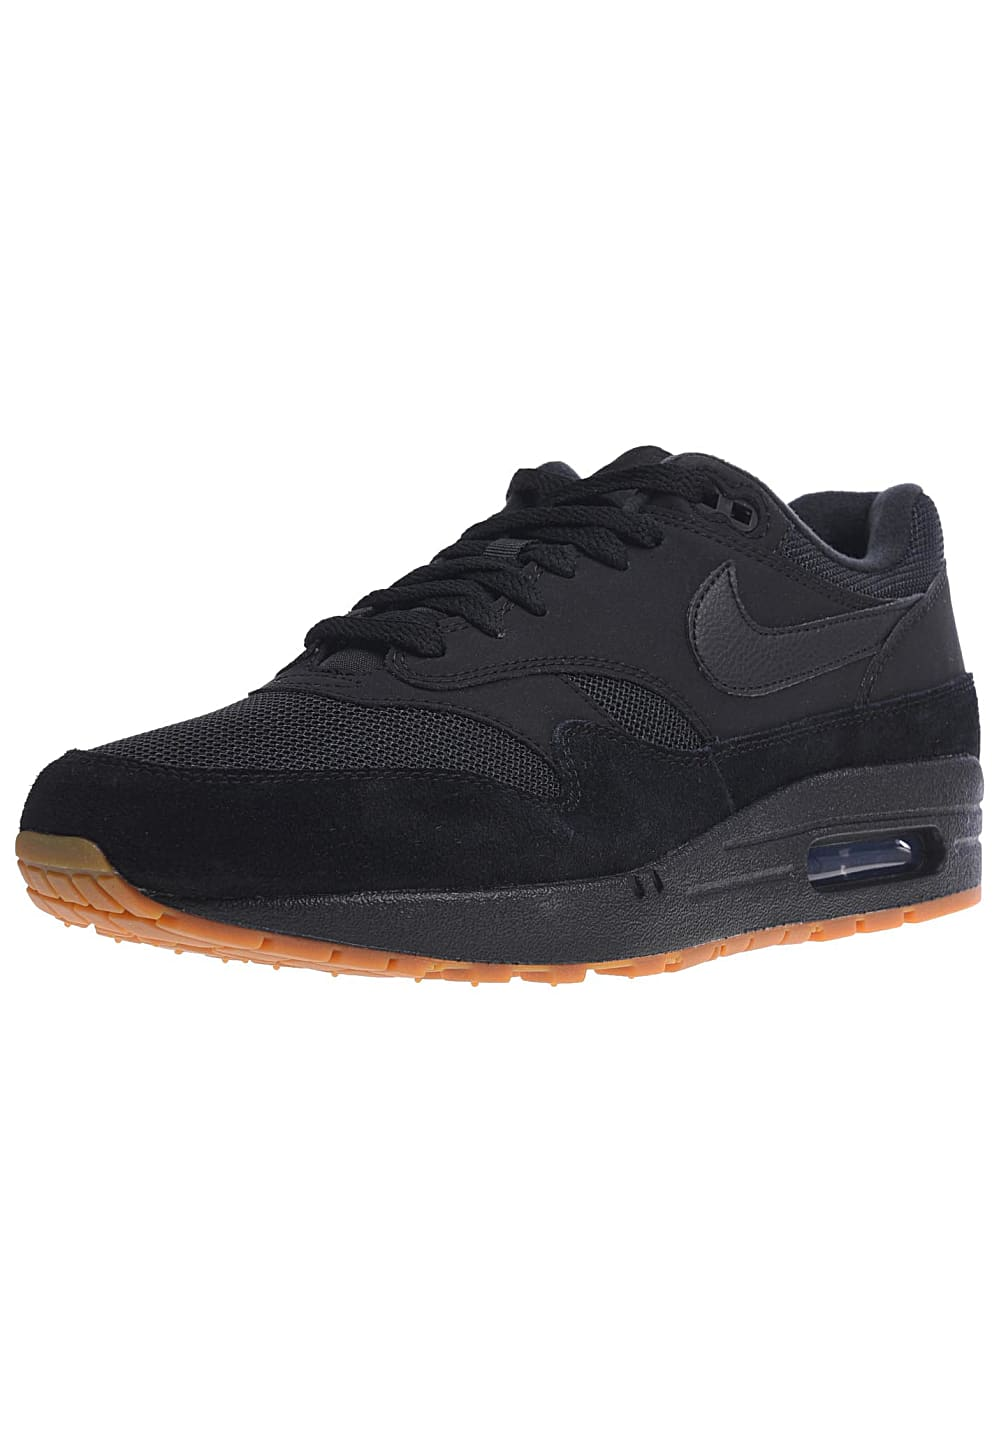 the latest 11249 de82c Next. -5%. NIKE SPORTSWEAR. Air Max 1 ...